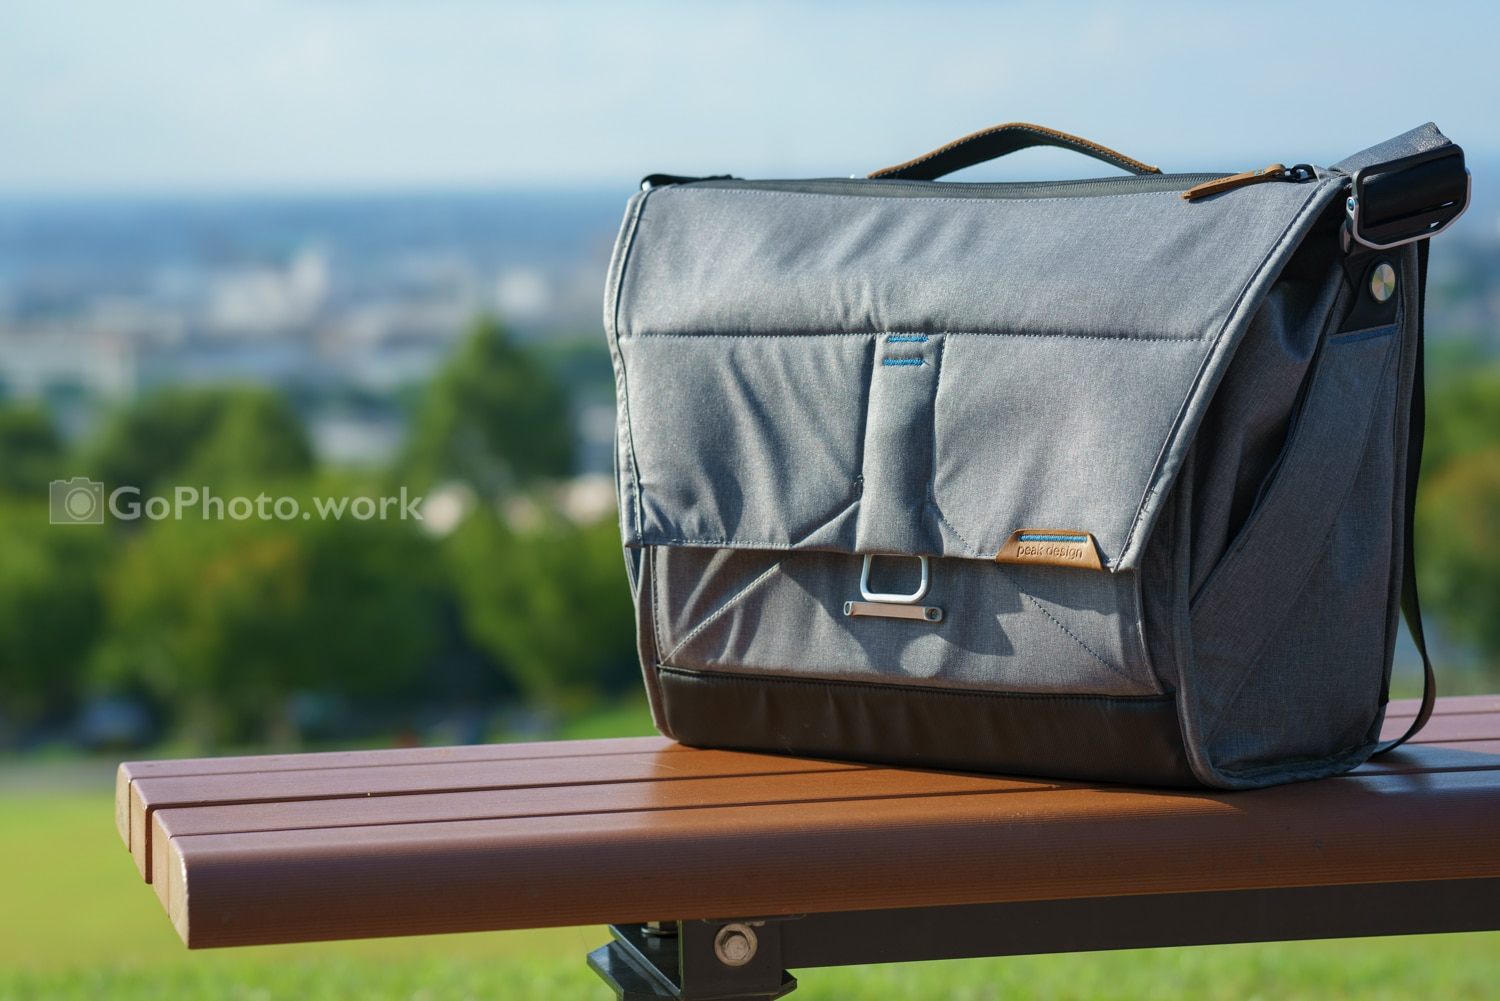 PeakDesign EverydayMessenger 15L Ash BS-15-AS 三ヶ月使用レビュー